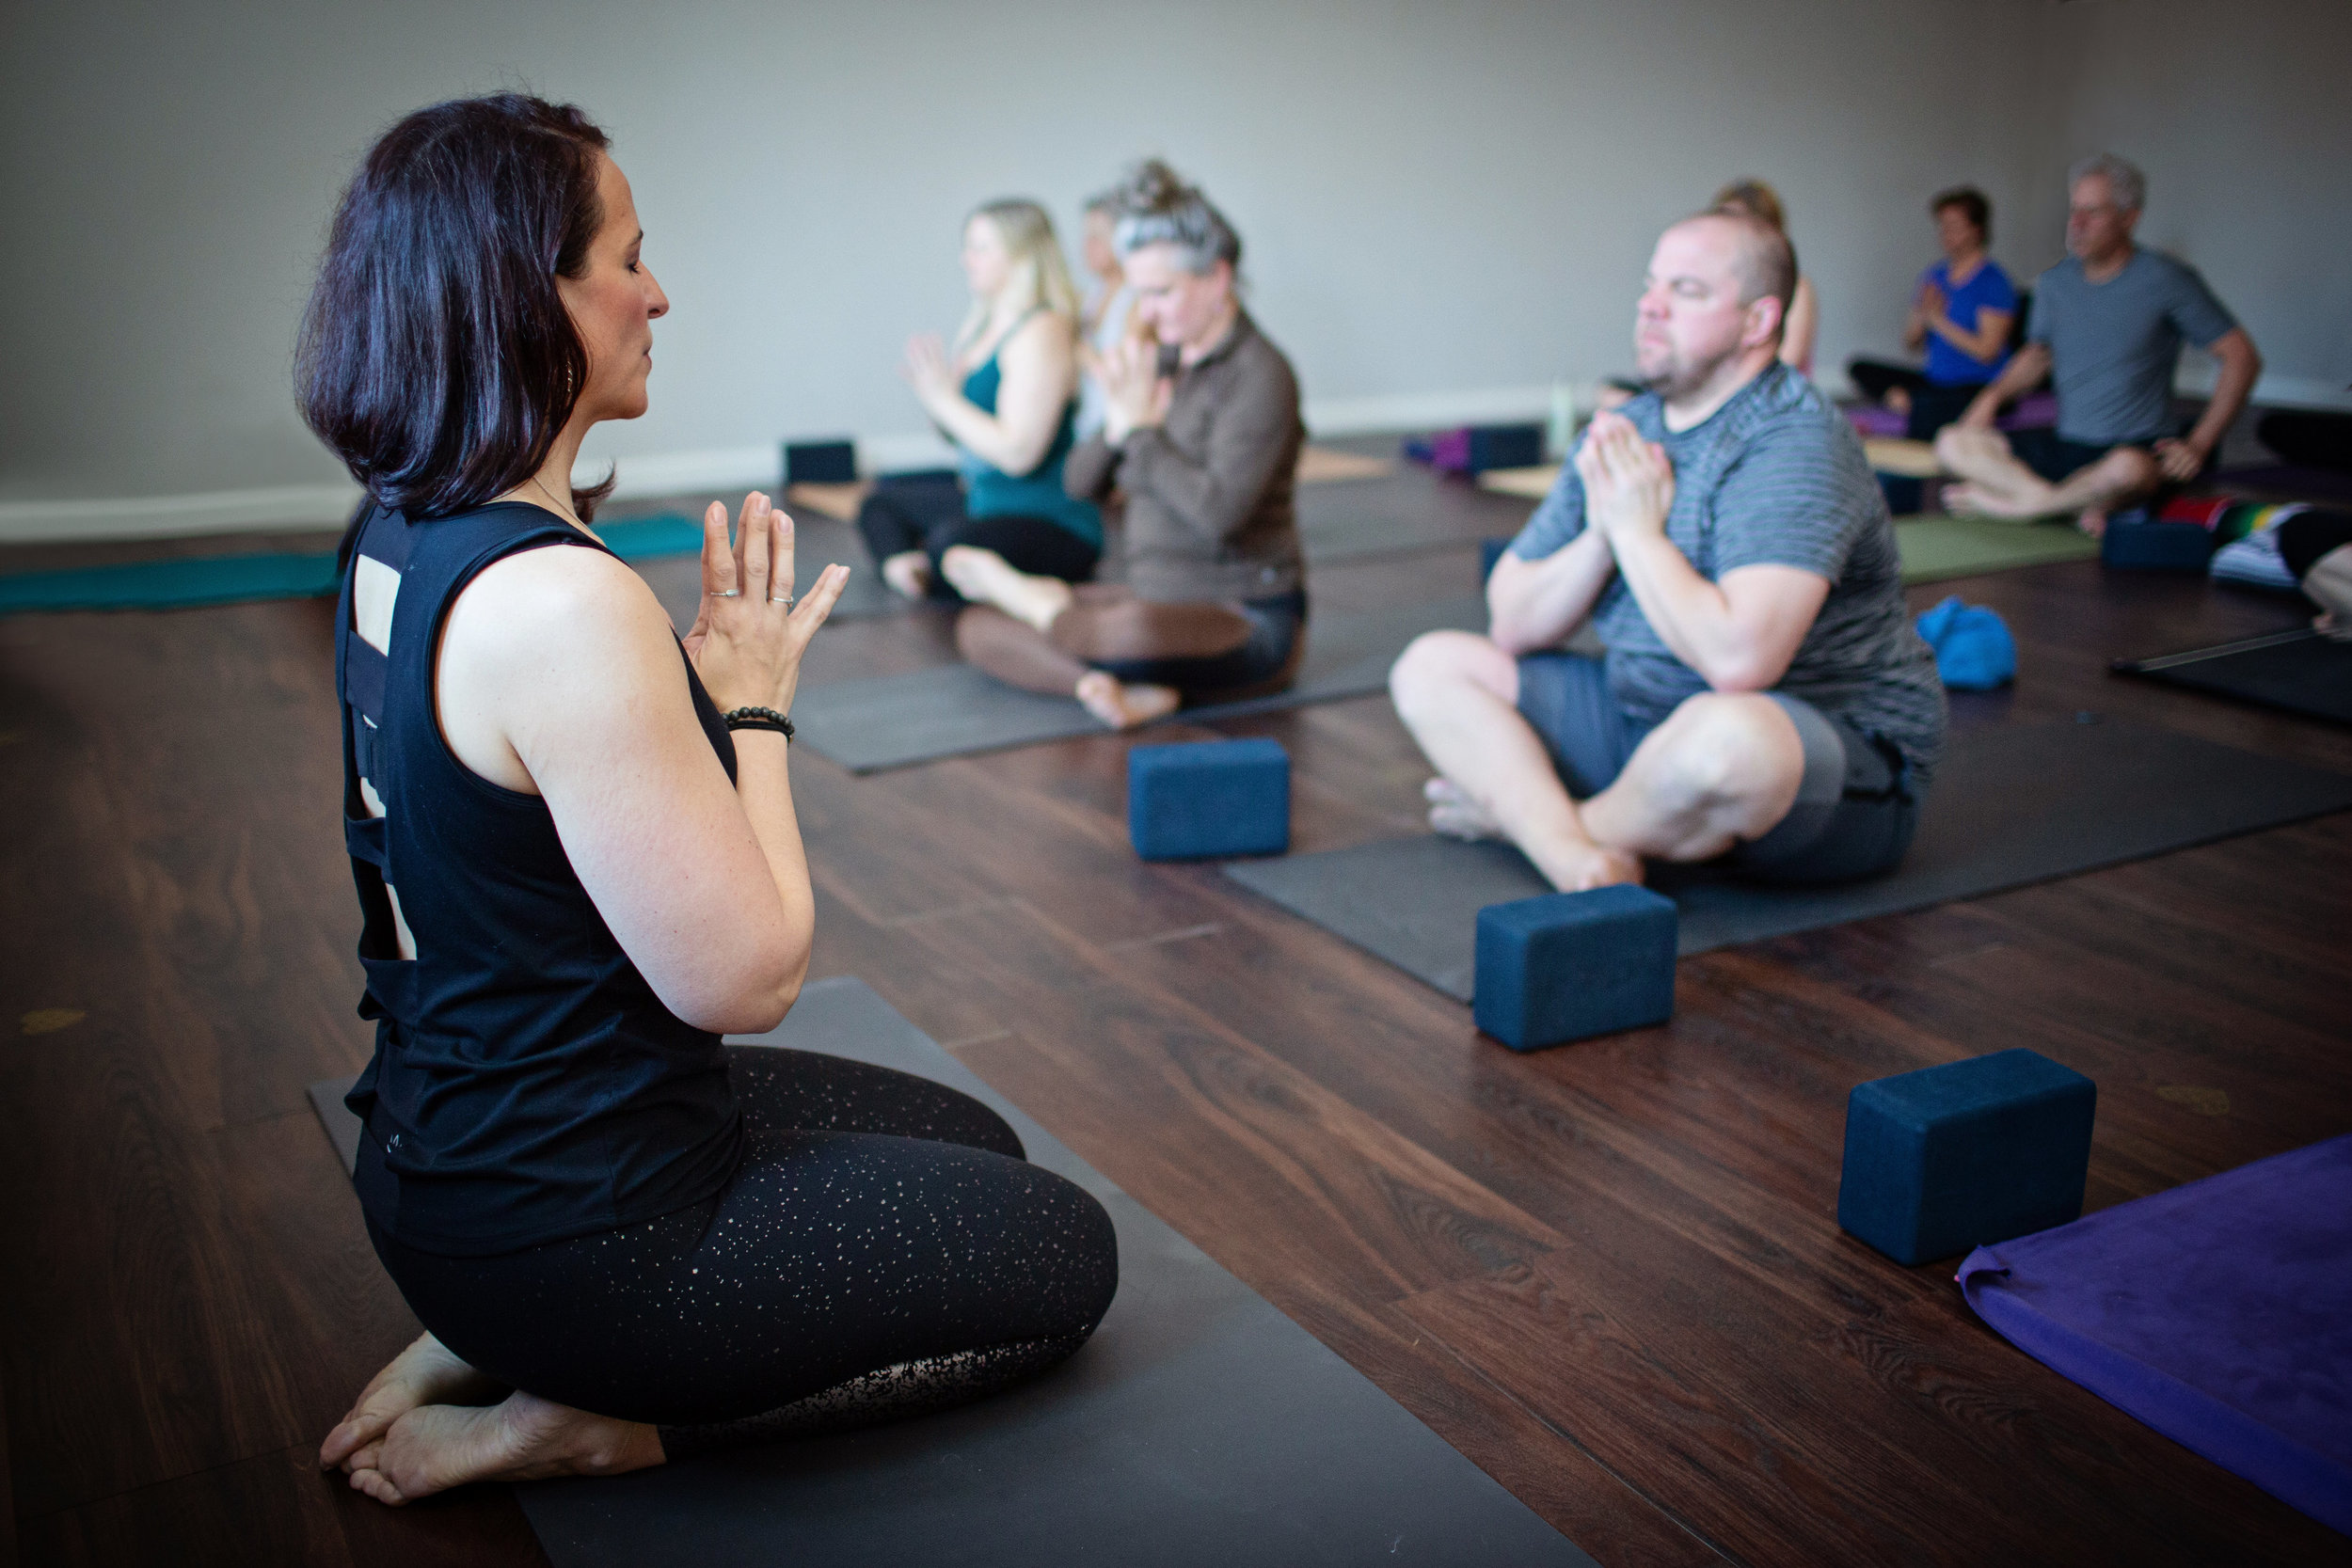 New To Yoga - Start your yoga practice with confidence. Click the link below to find out how.